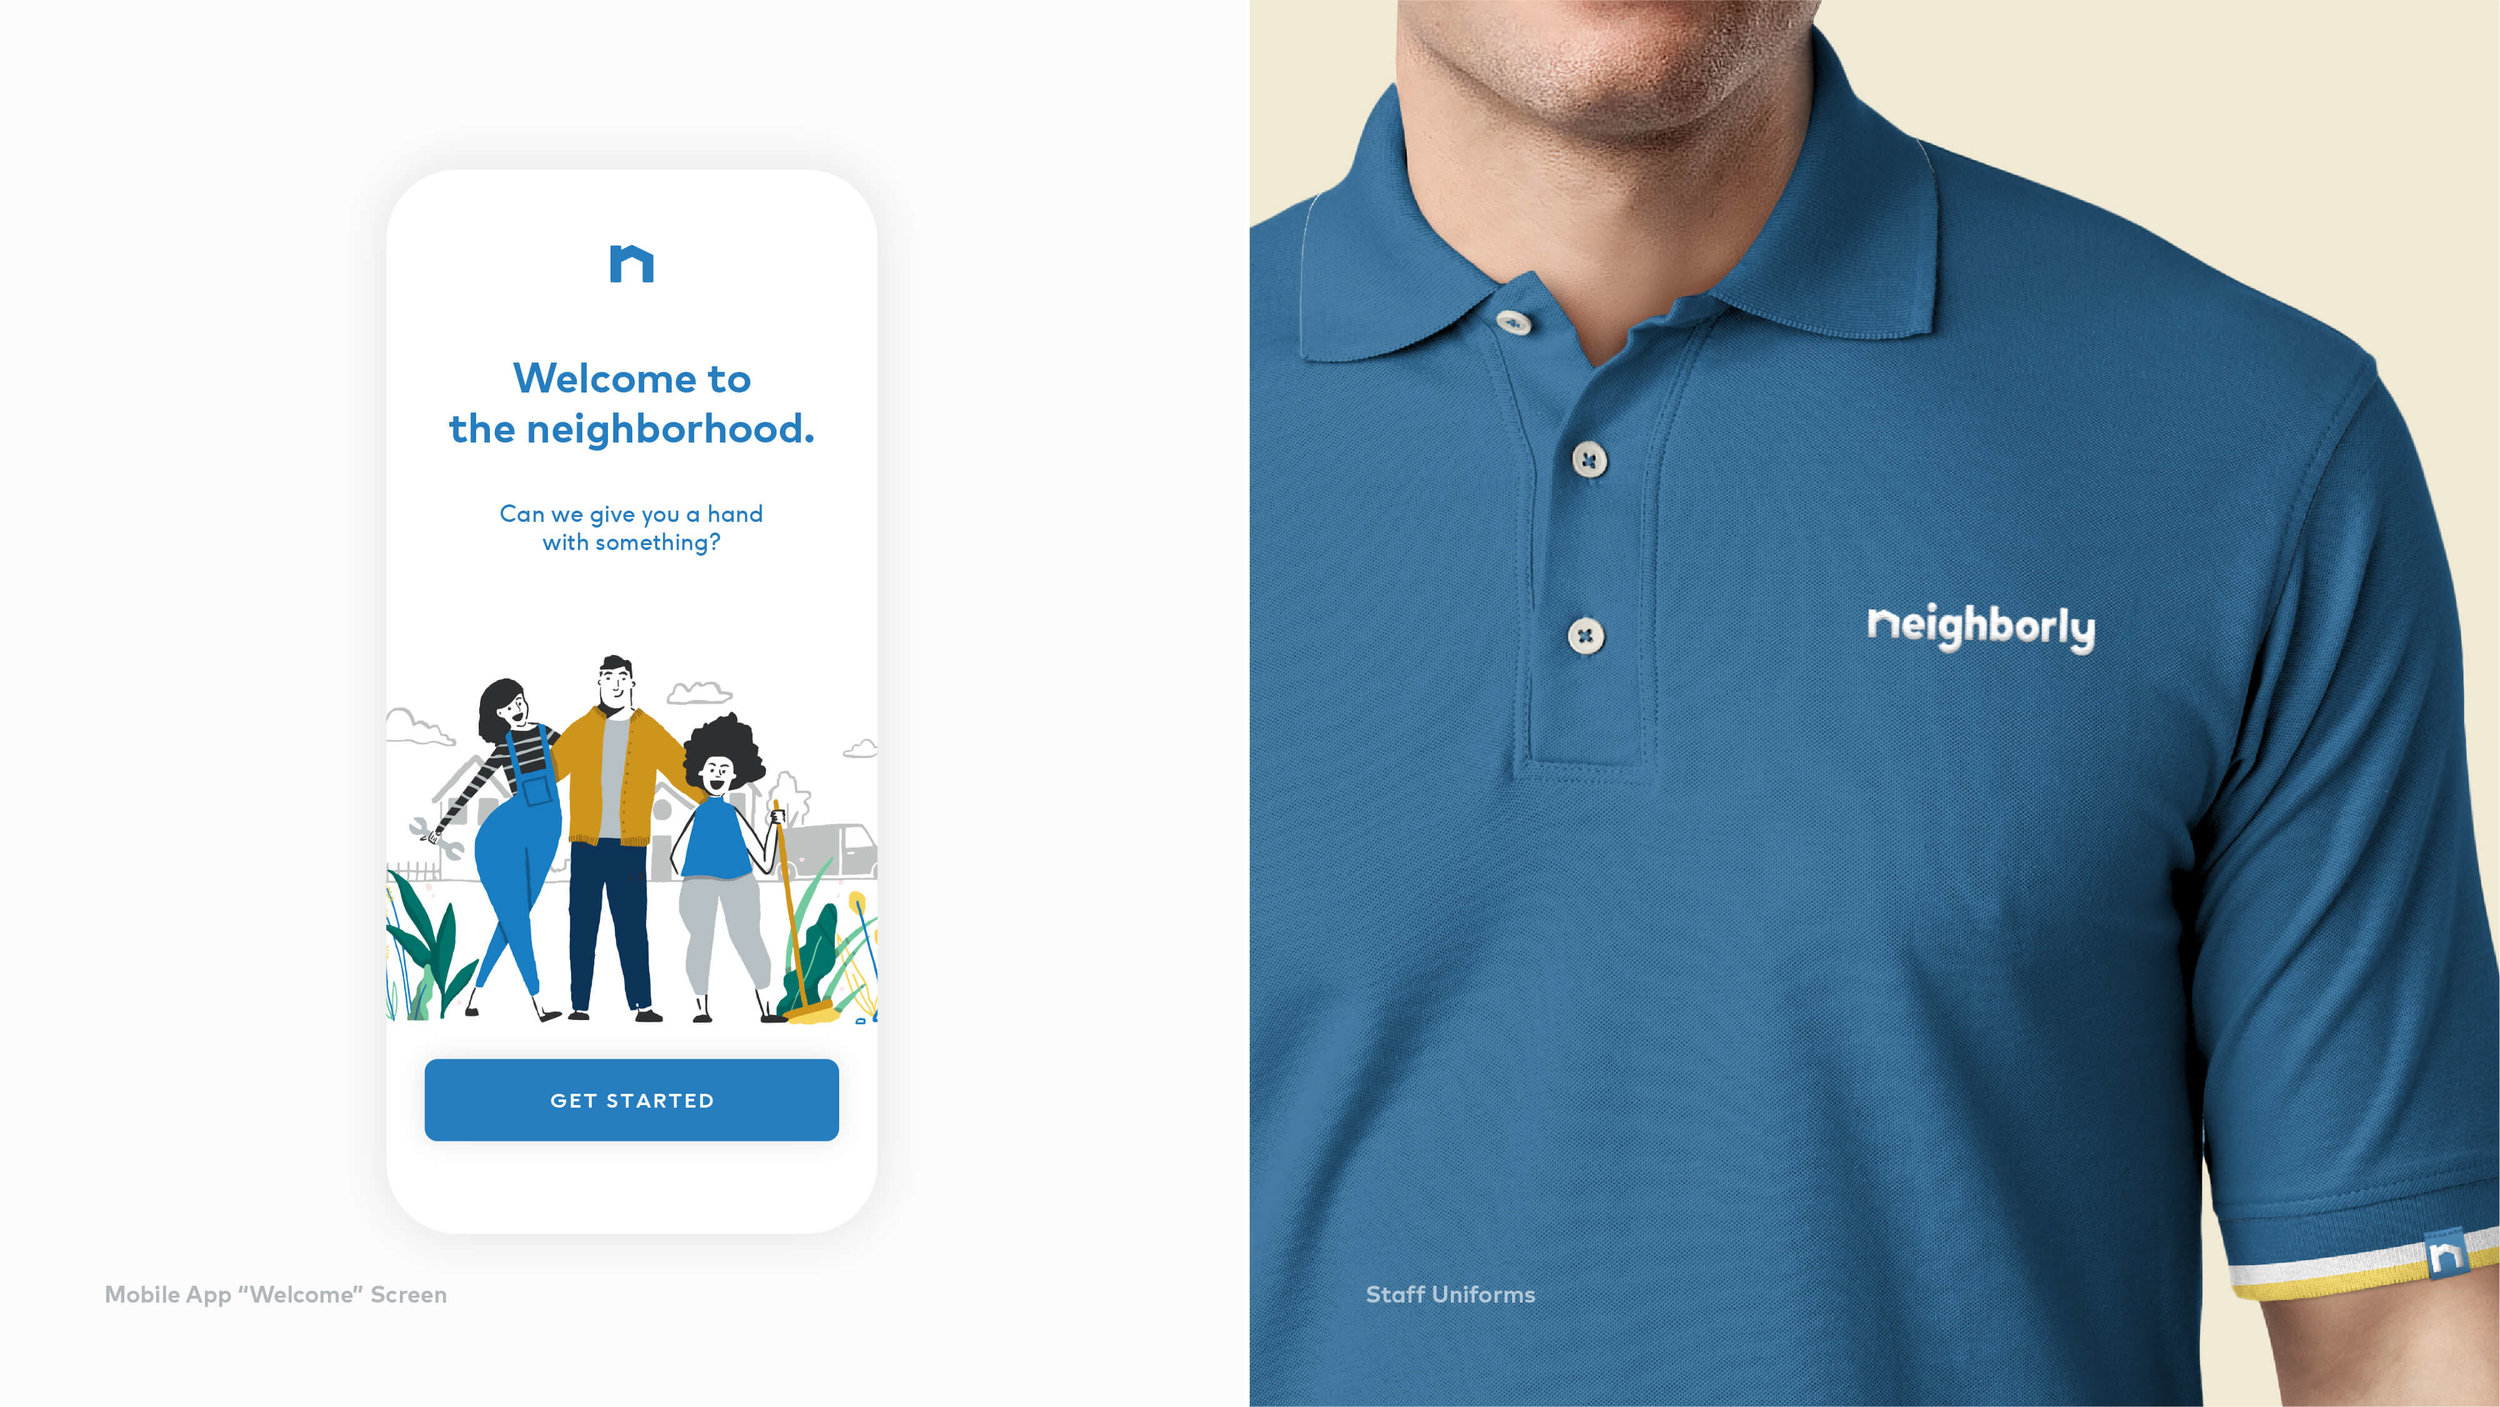 Neighborly_DesignPresentation_FINAL_MobileWelcome+Uniforms.jpg